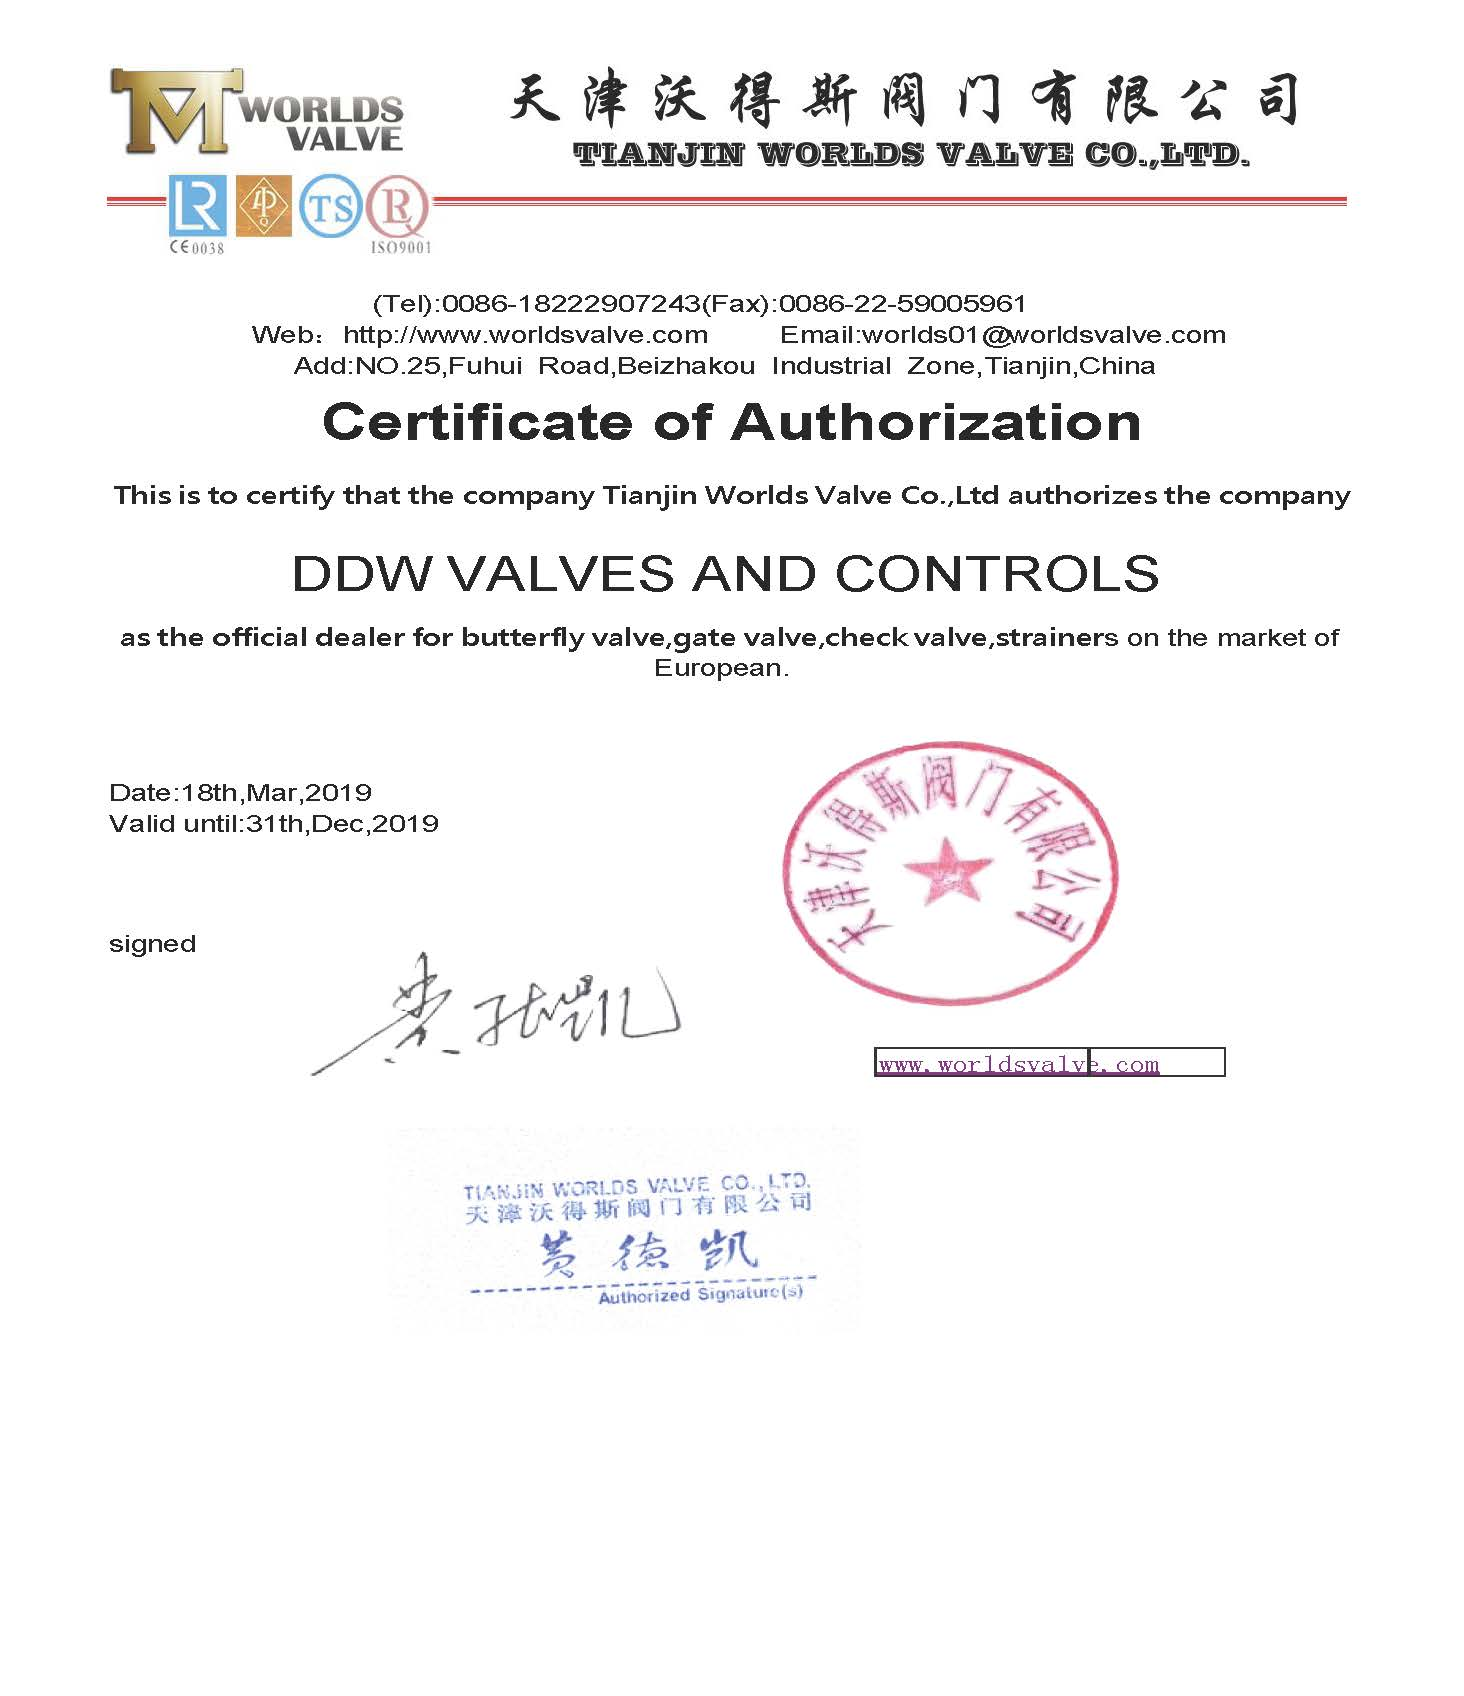 TIANJIN WORLDS VALVE Co., LTD